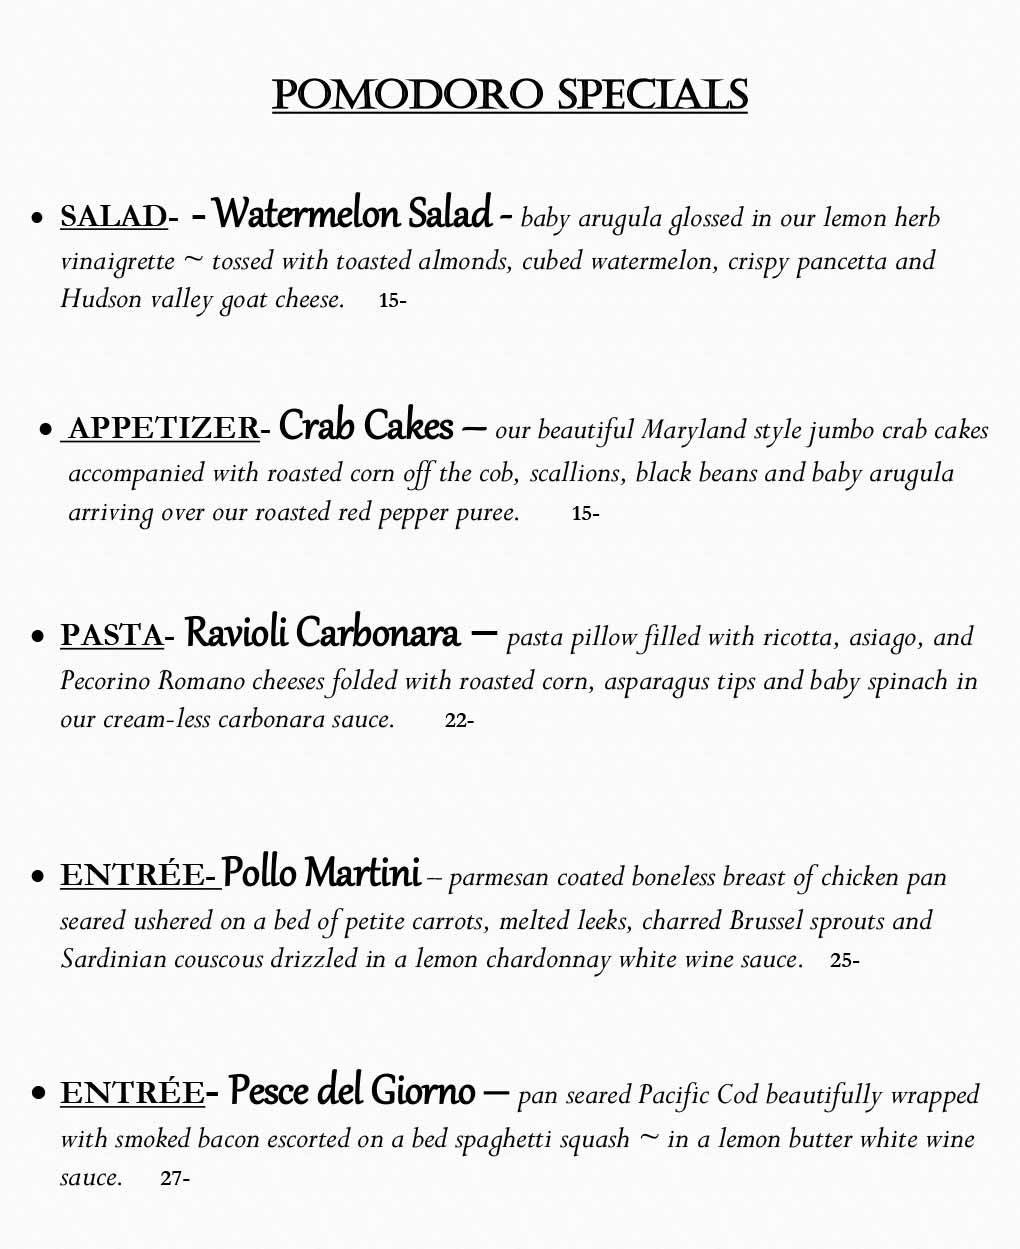 Pomodoro Riverside Weekly Specials from 06/07- 06/13